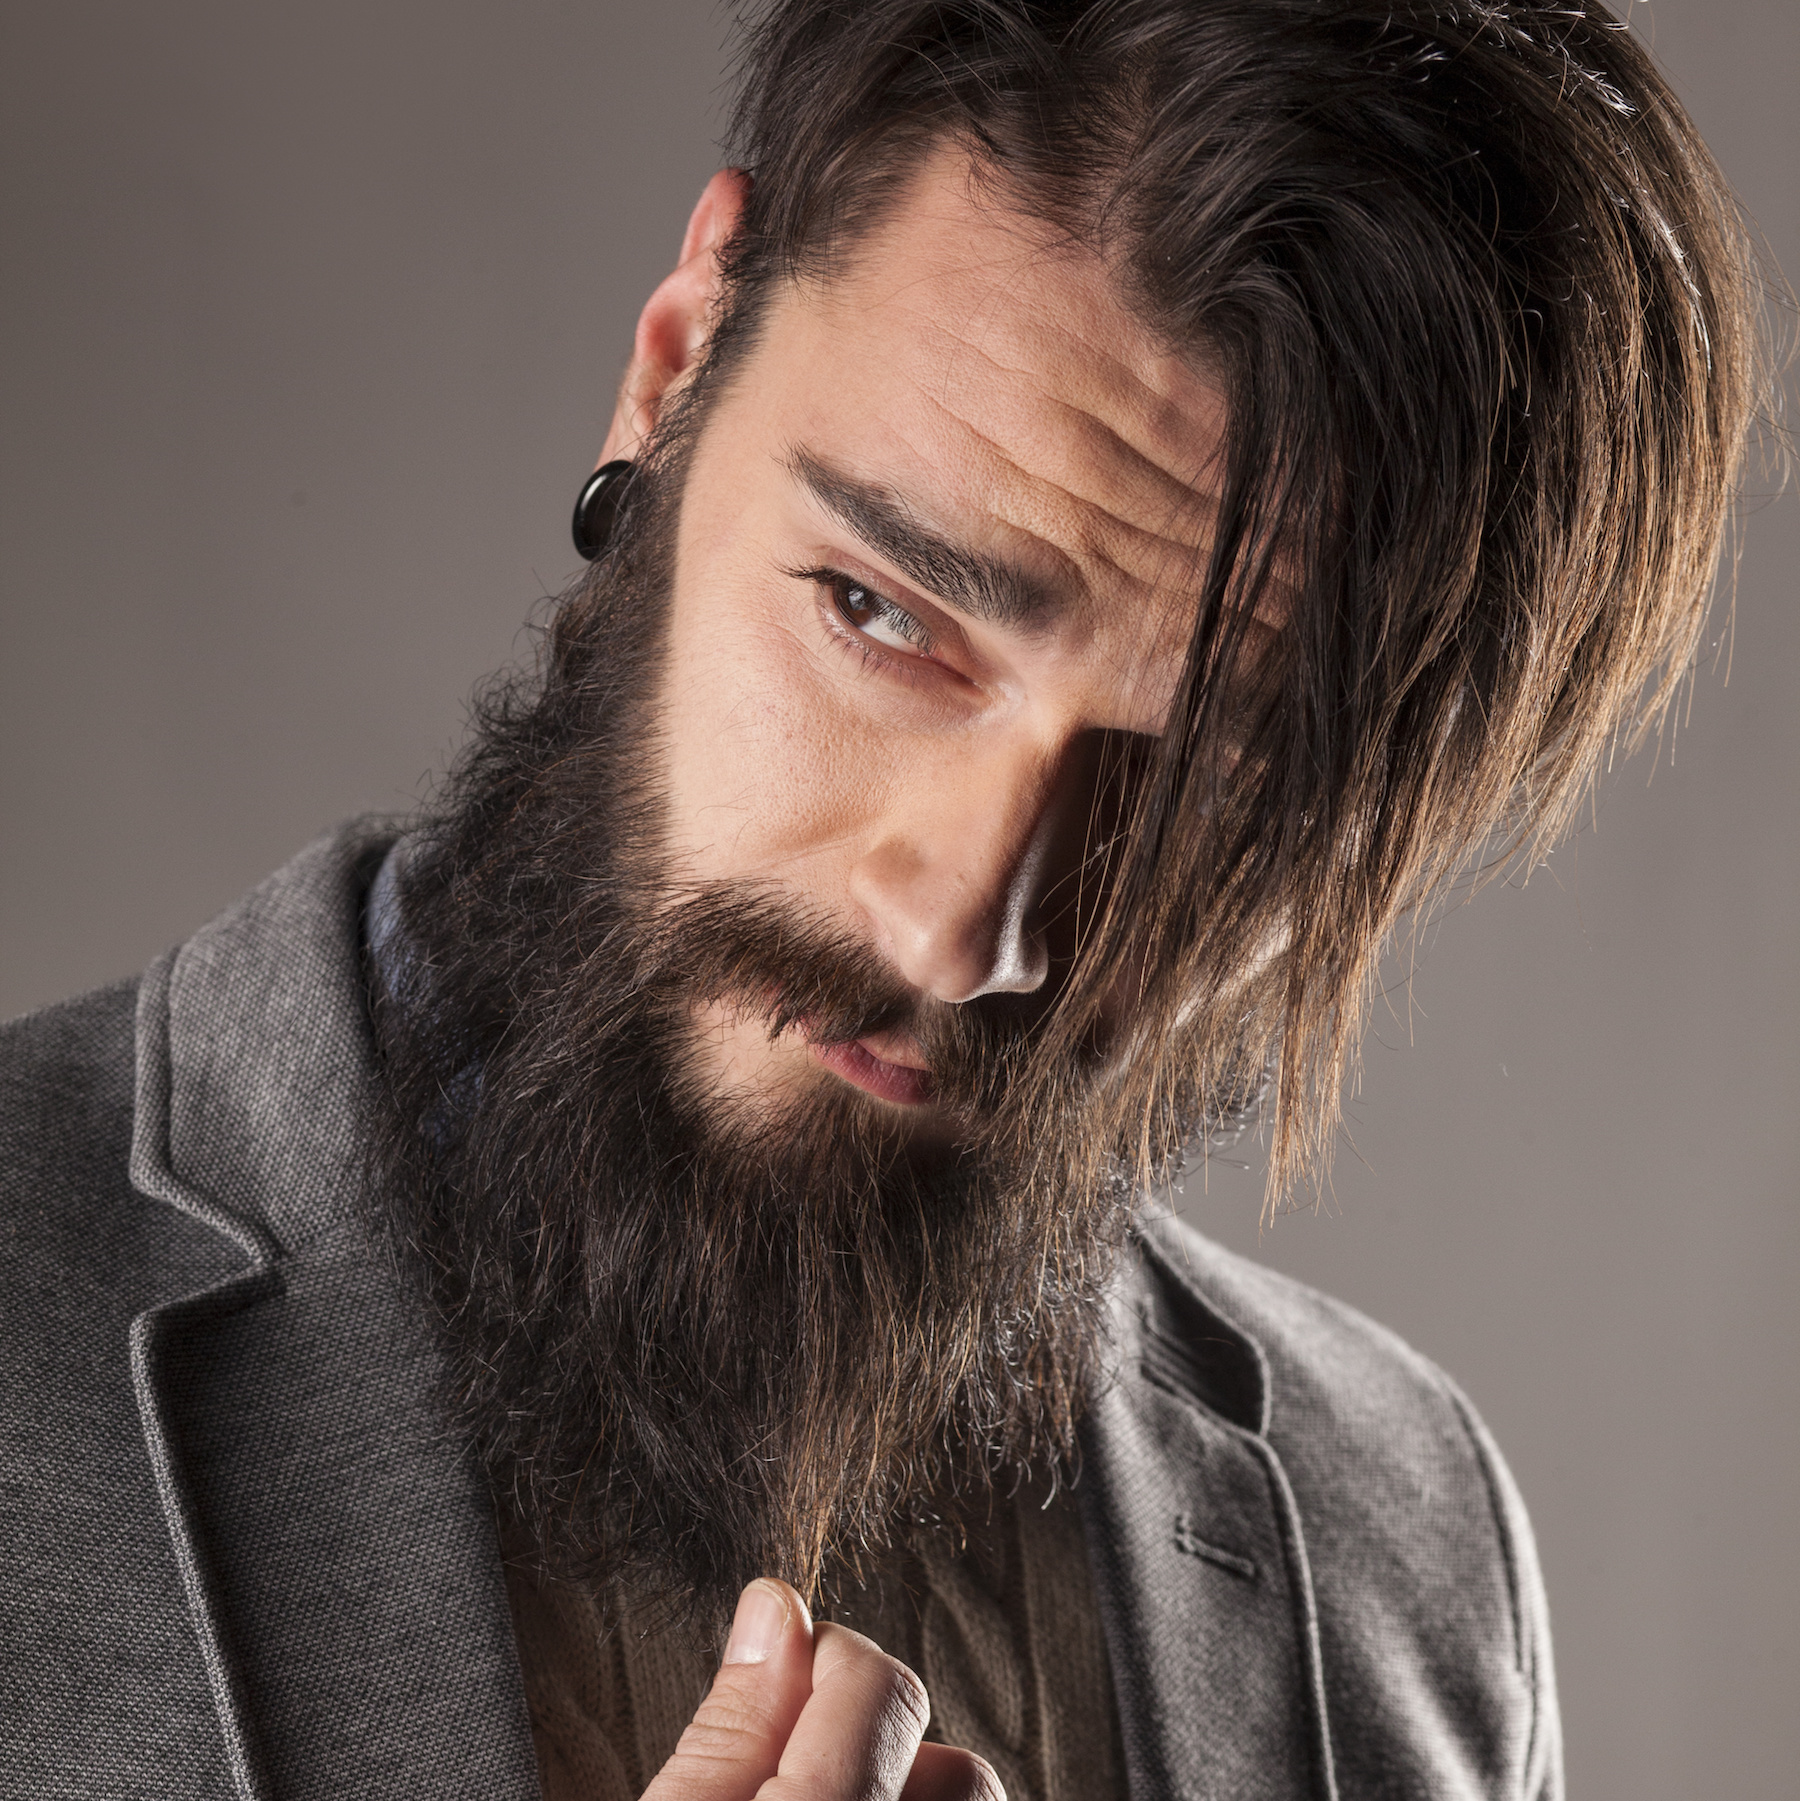 Has My Beard Stopped Growing? – A Grooming Guide to Beard Growth